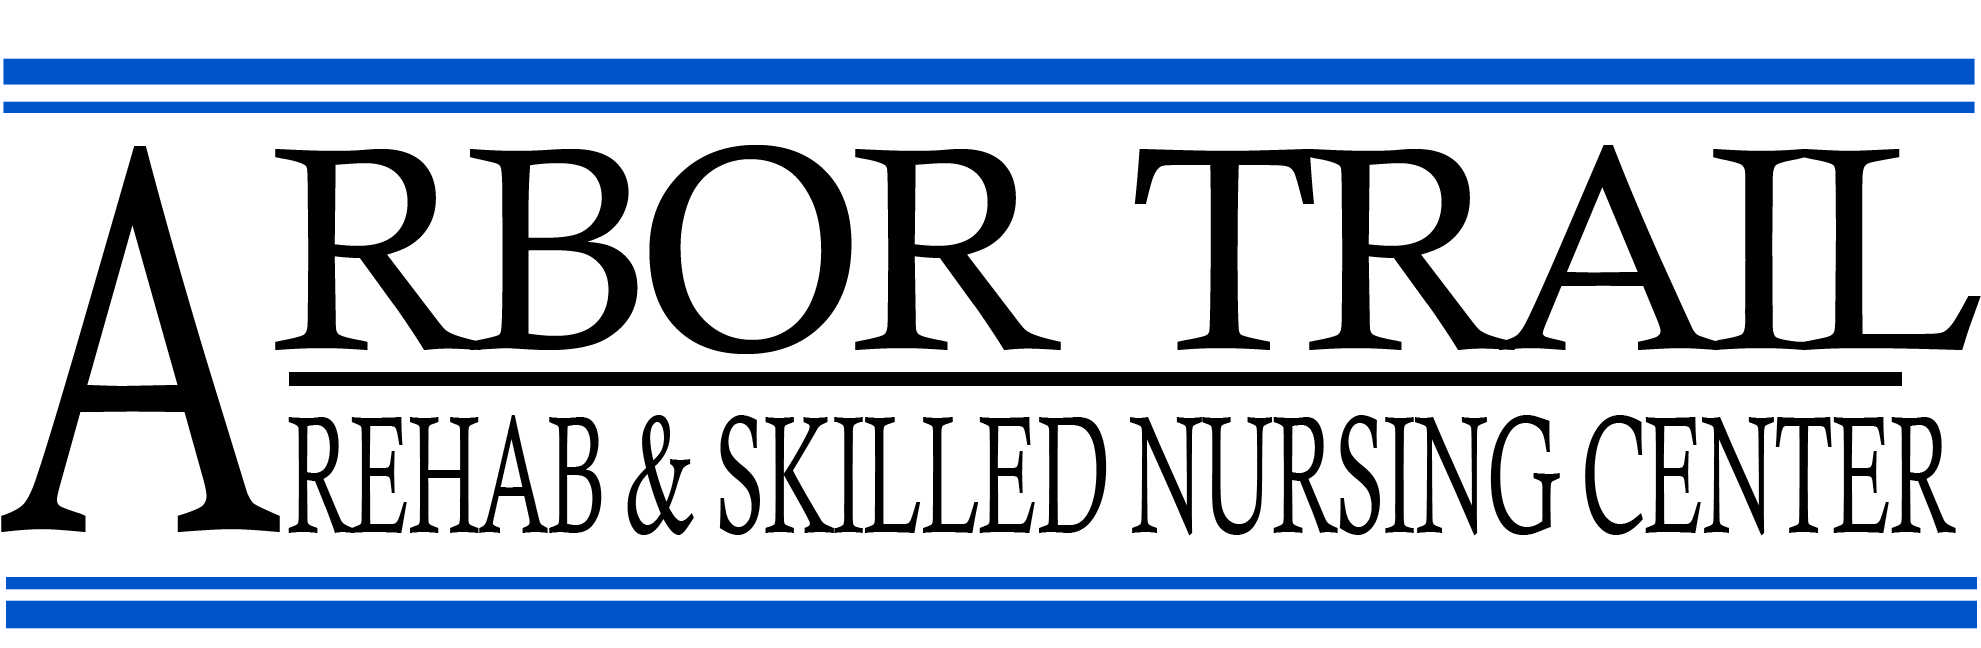 Arbor Trail Rehab and Skilled Nursing Center logo